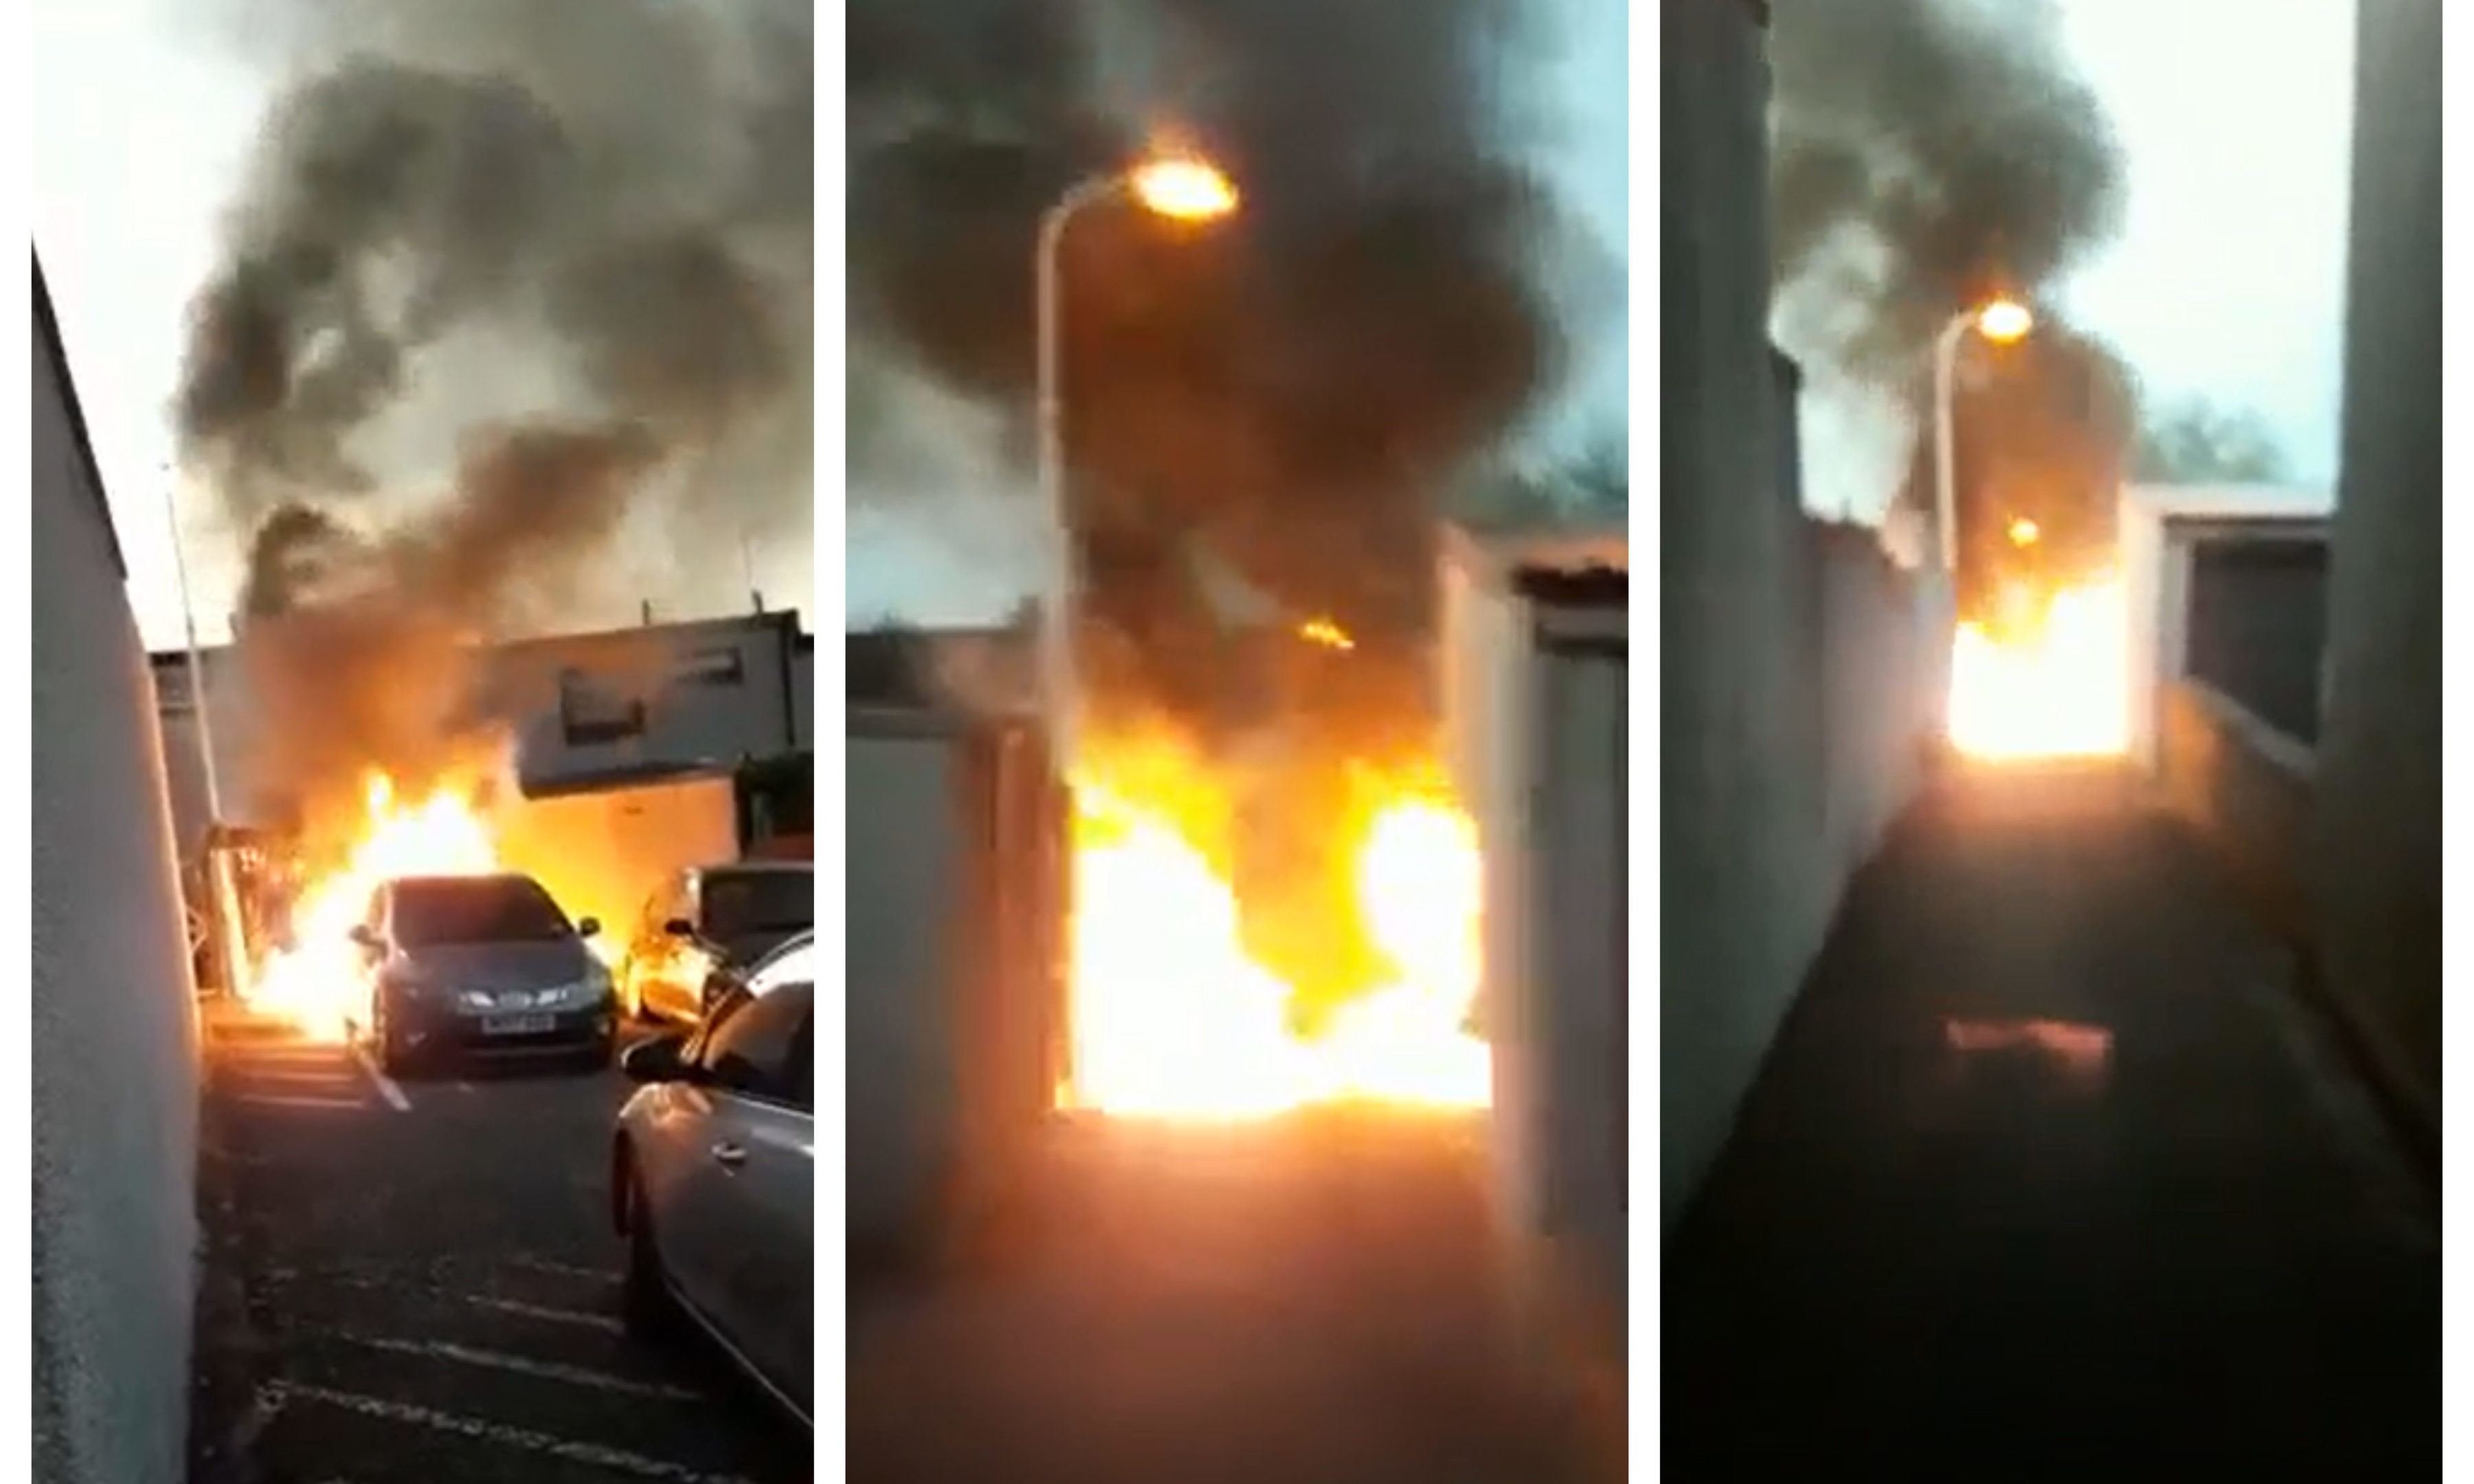 Ian Briggs' car goes up in flames in Glenrothes.